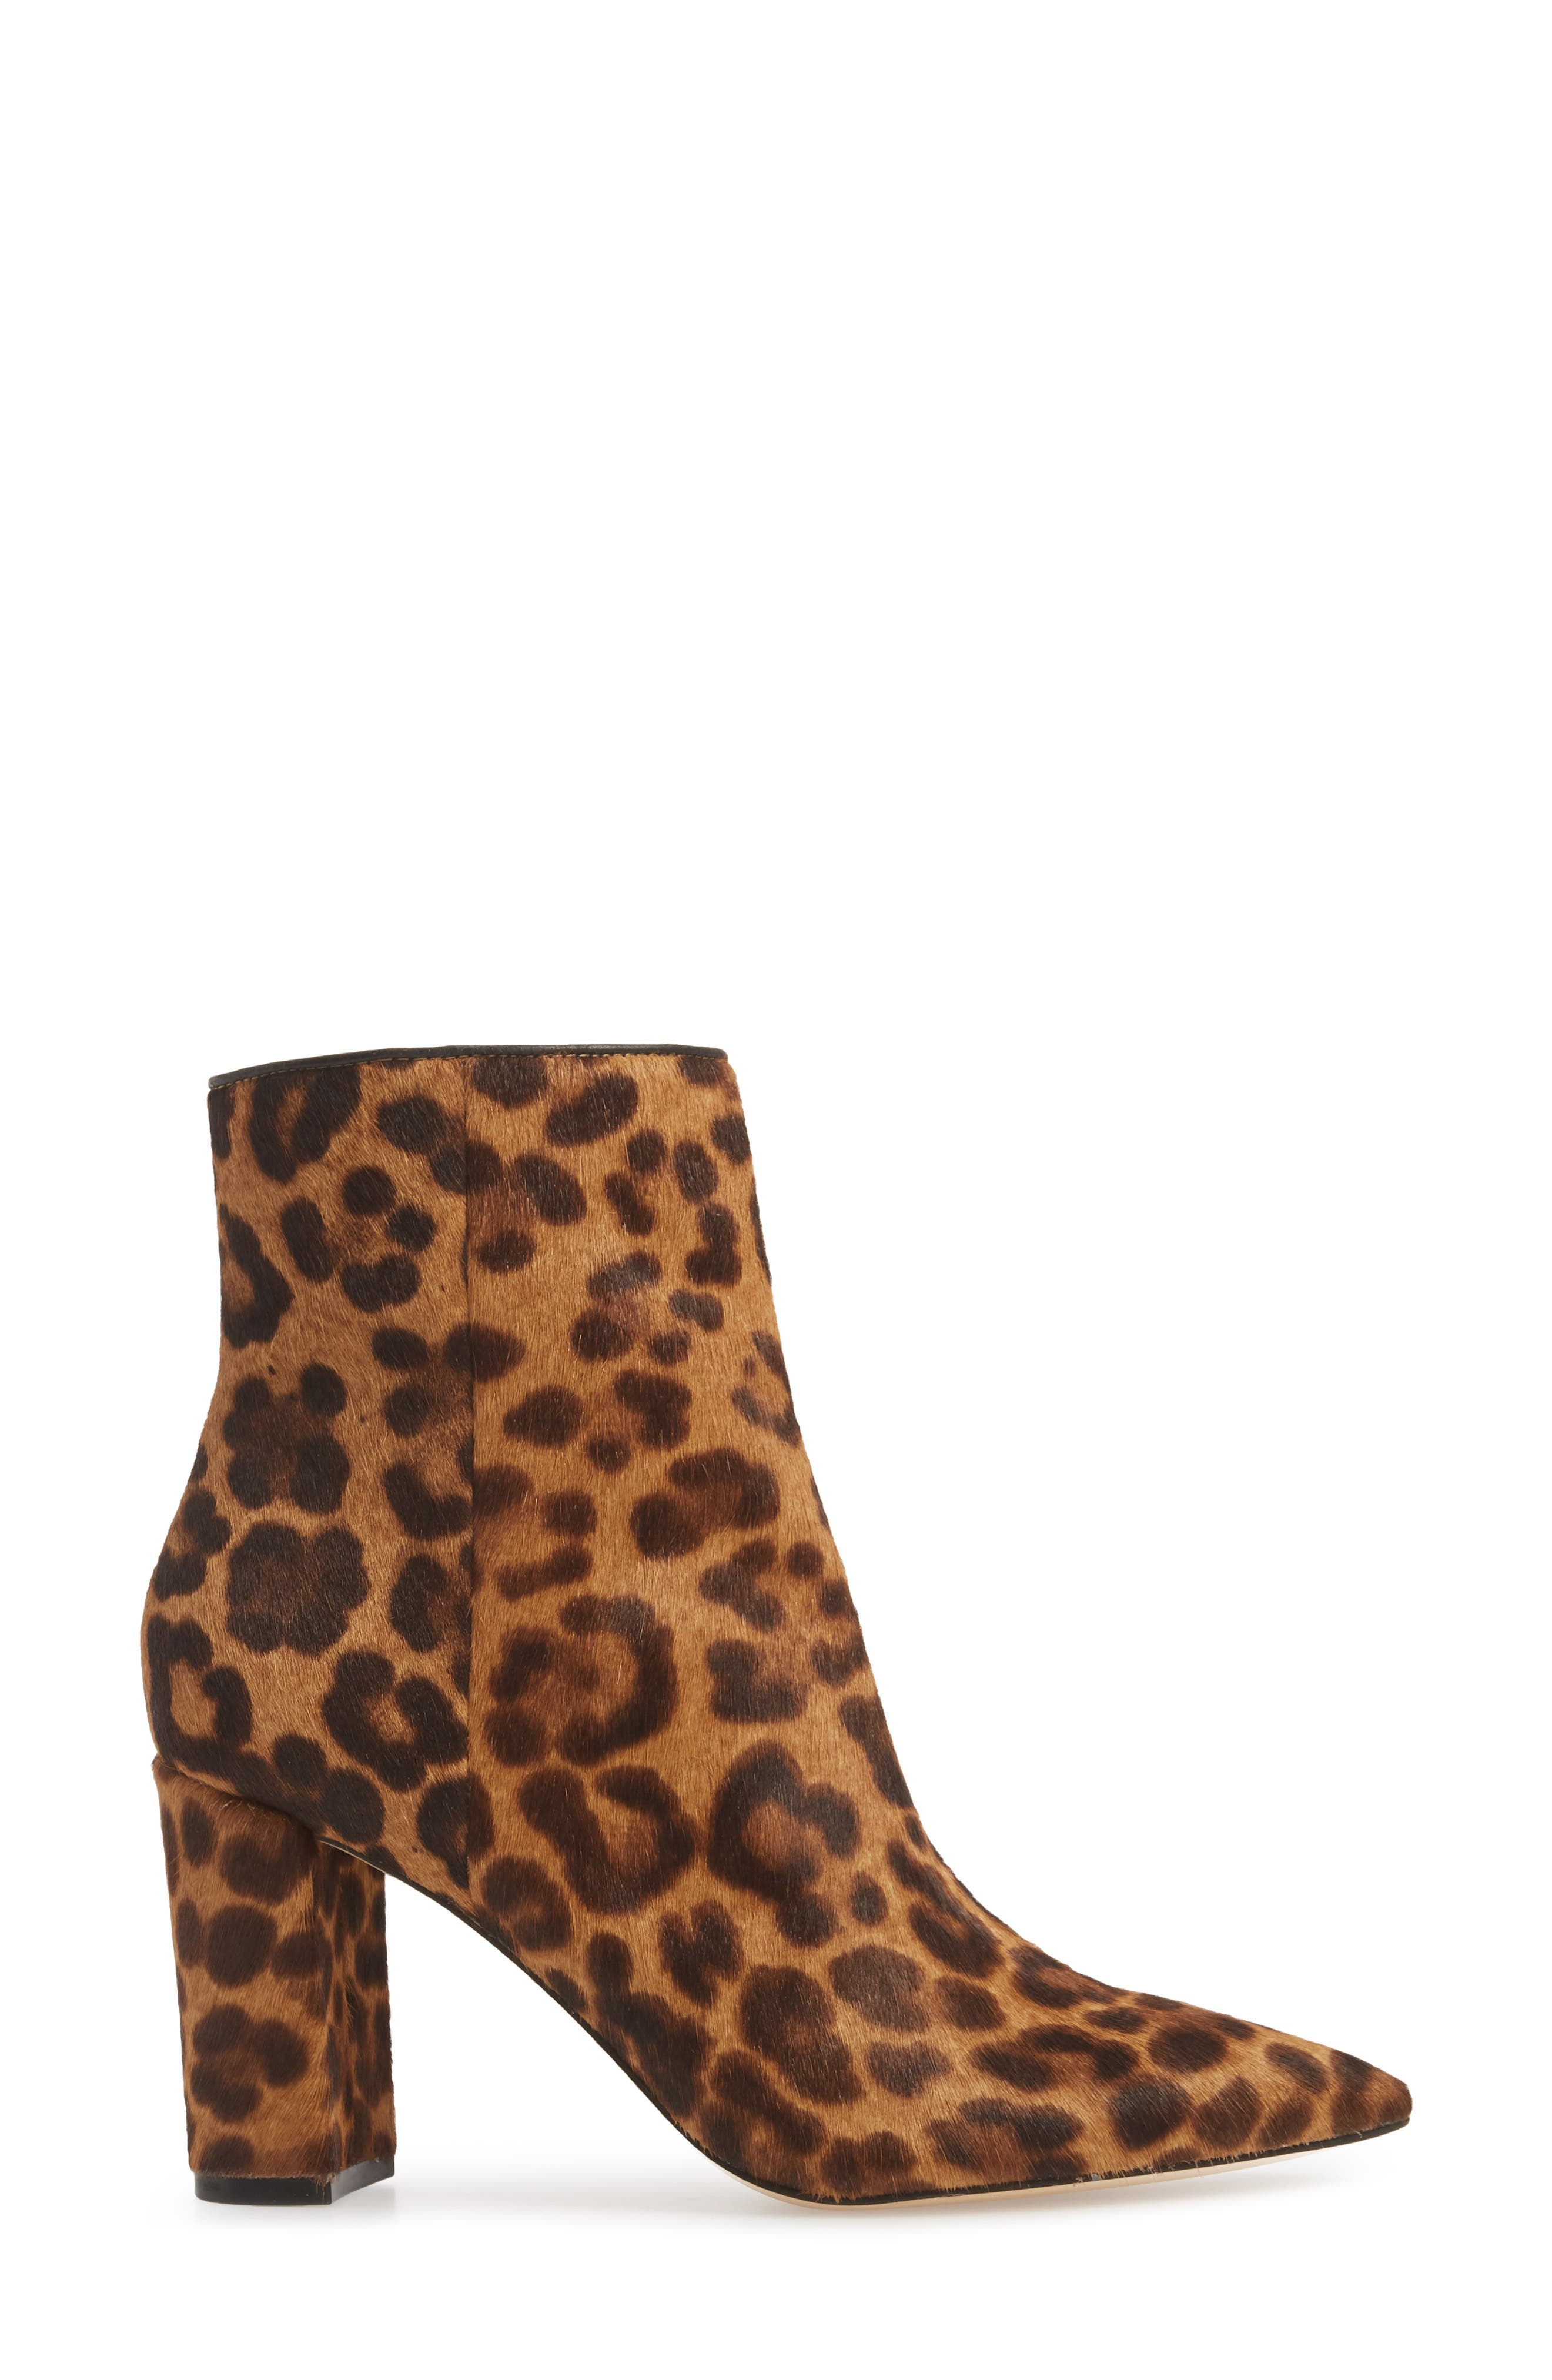 Ulanily Pointy Toe Bootie,                             Alternate thumbnail 3, color,                             LEOPARD CALF HAIR